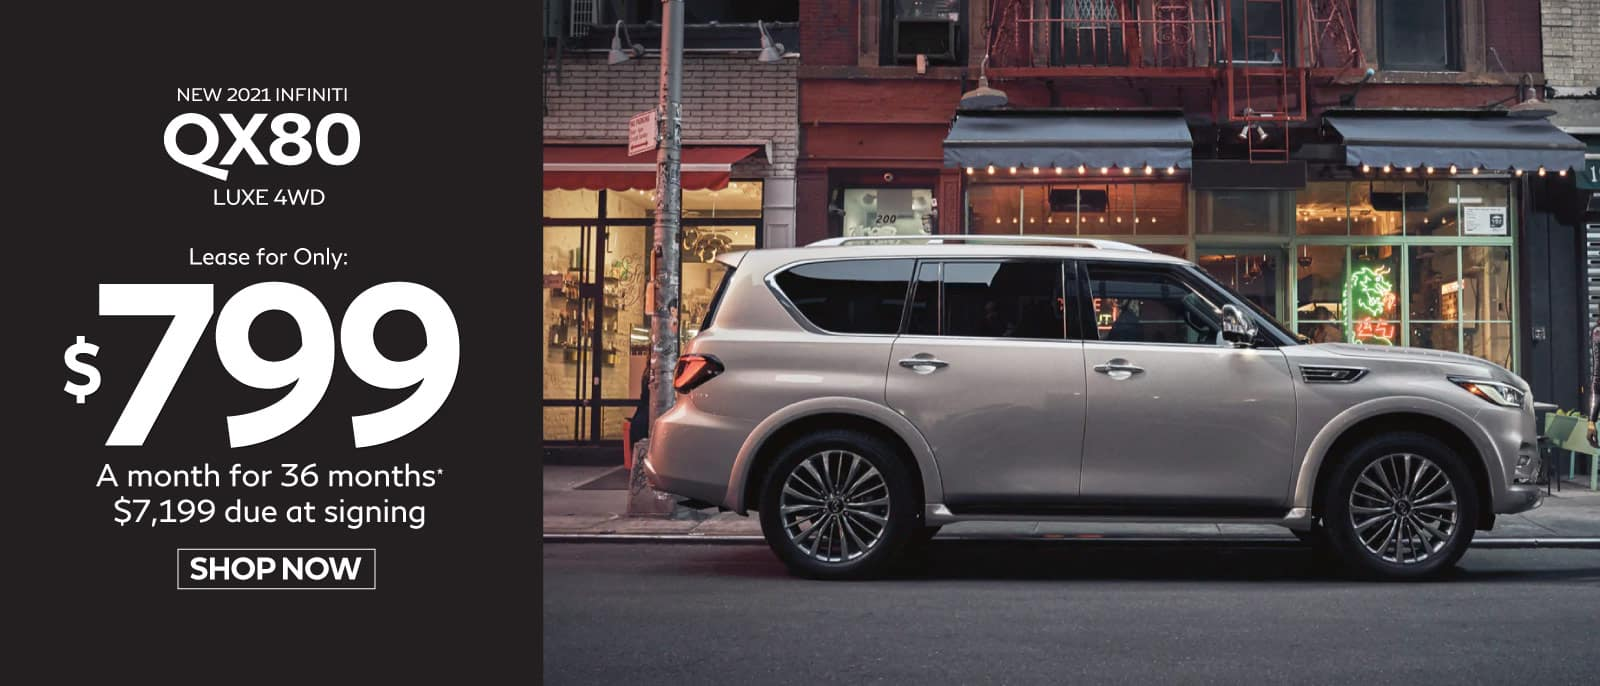 New 2021 INFINITI QX80 - Lease for only $799 a mo. for 36 mos.